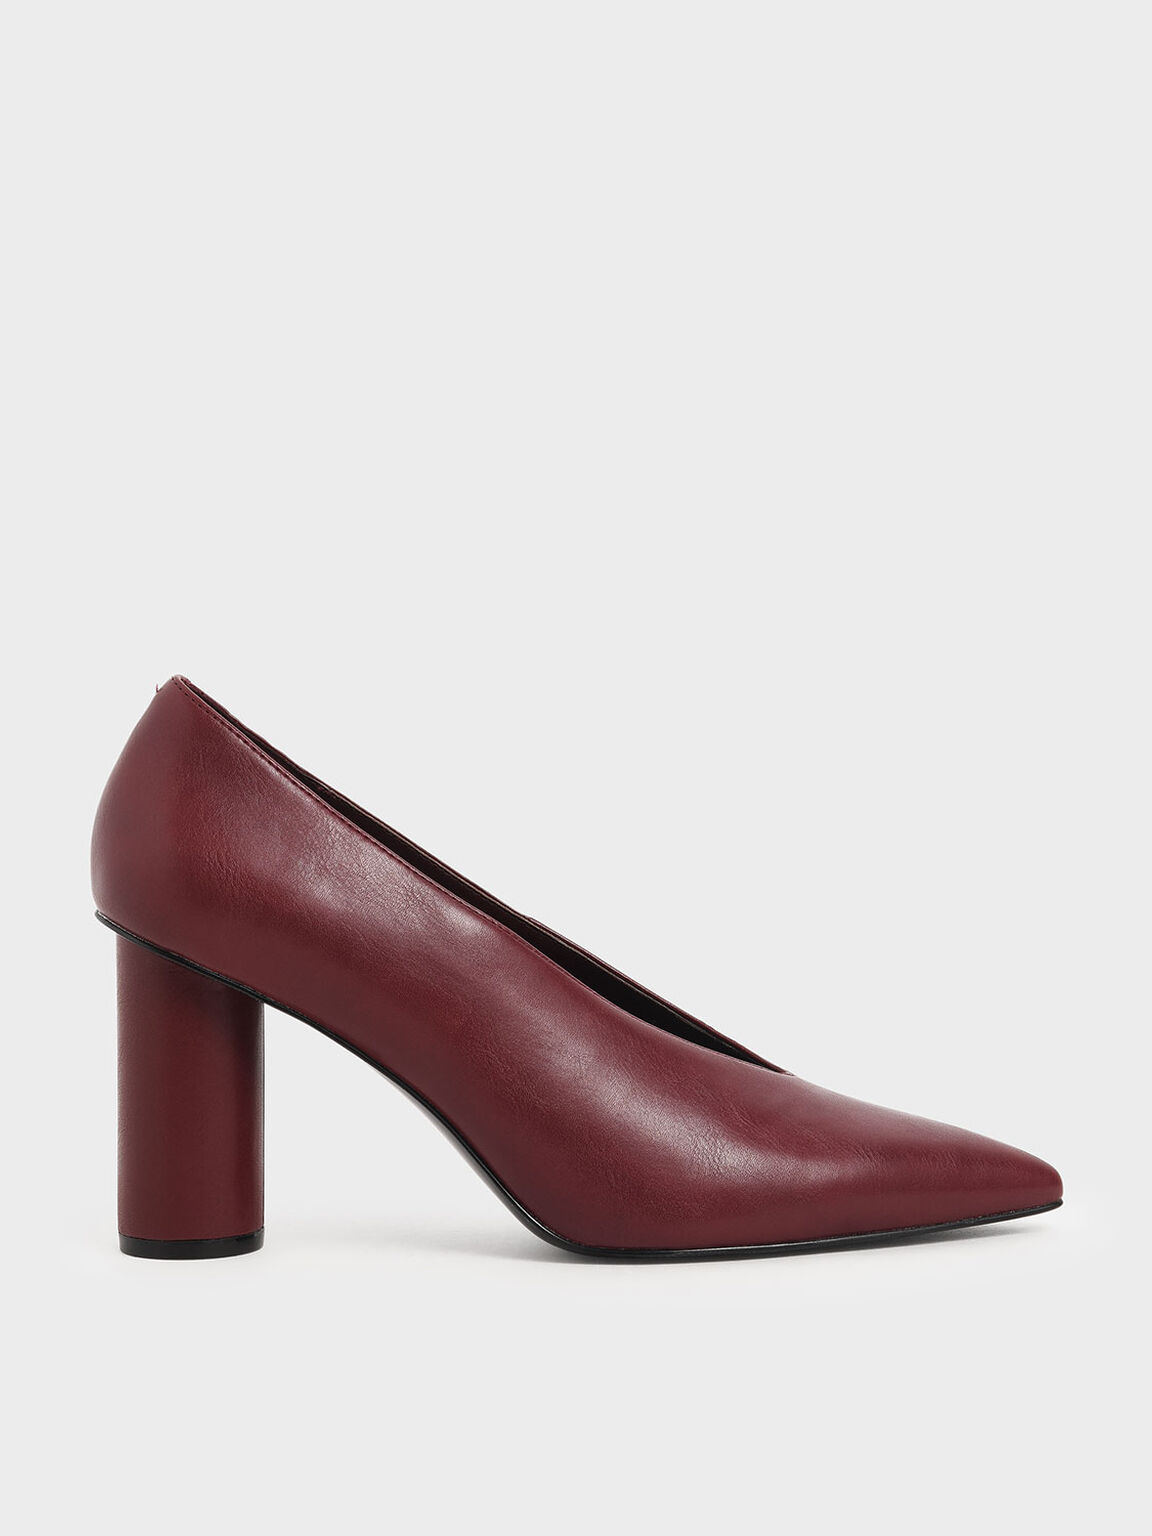 V-Cut Cylindrical Heel Pumps, Burgundy, hi-res